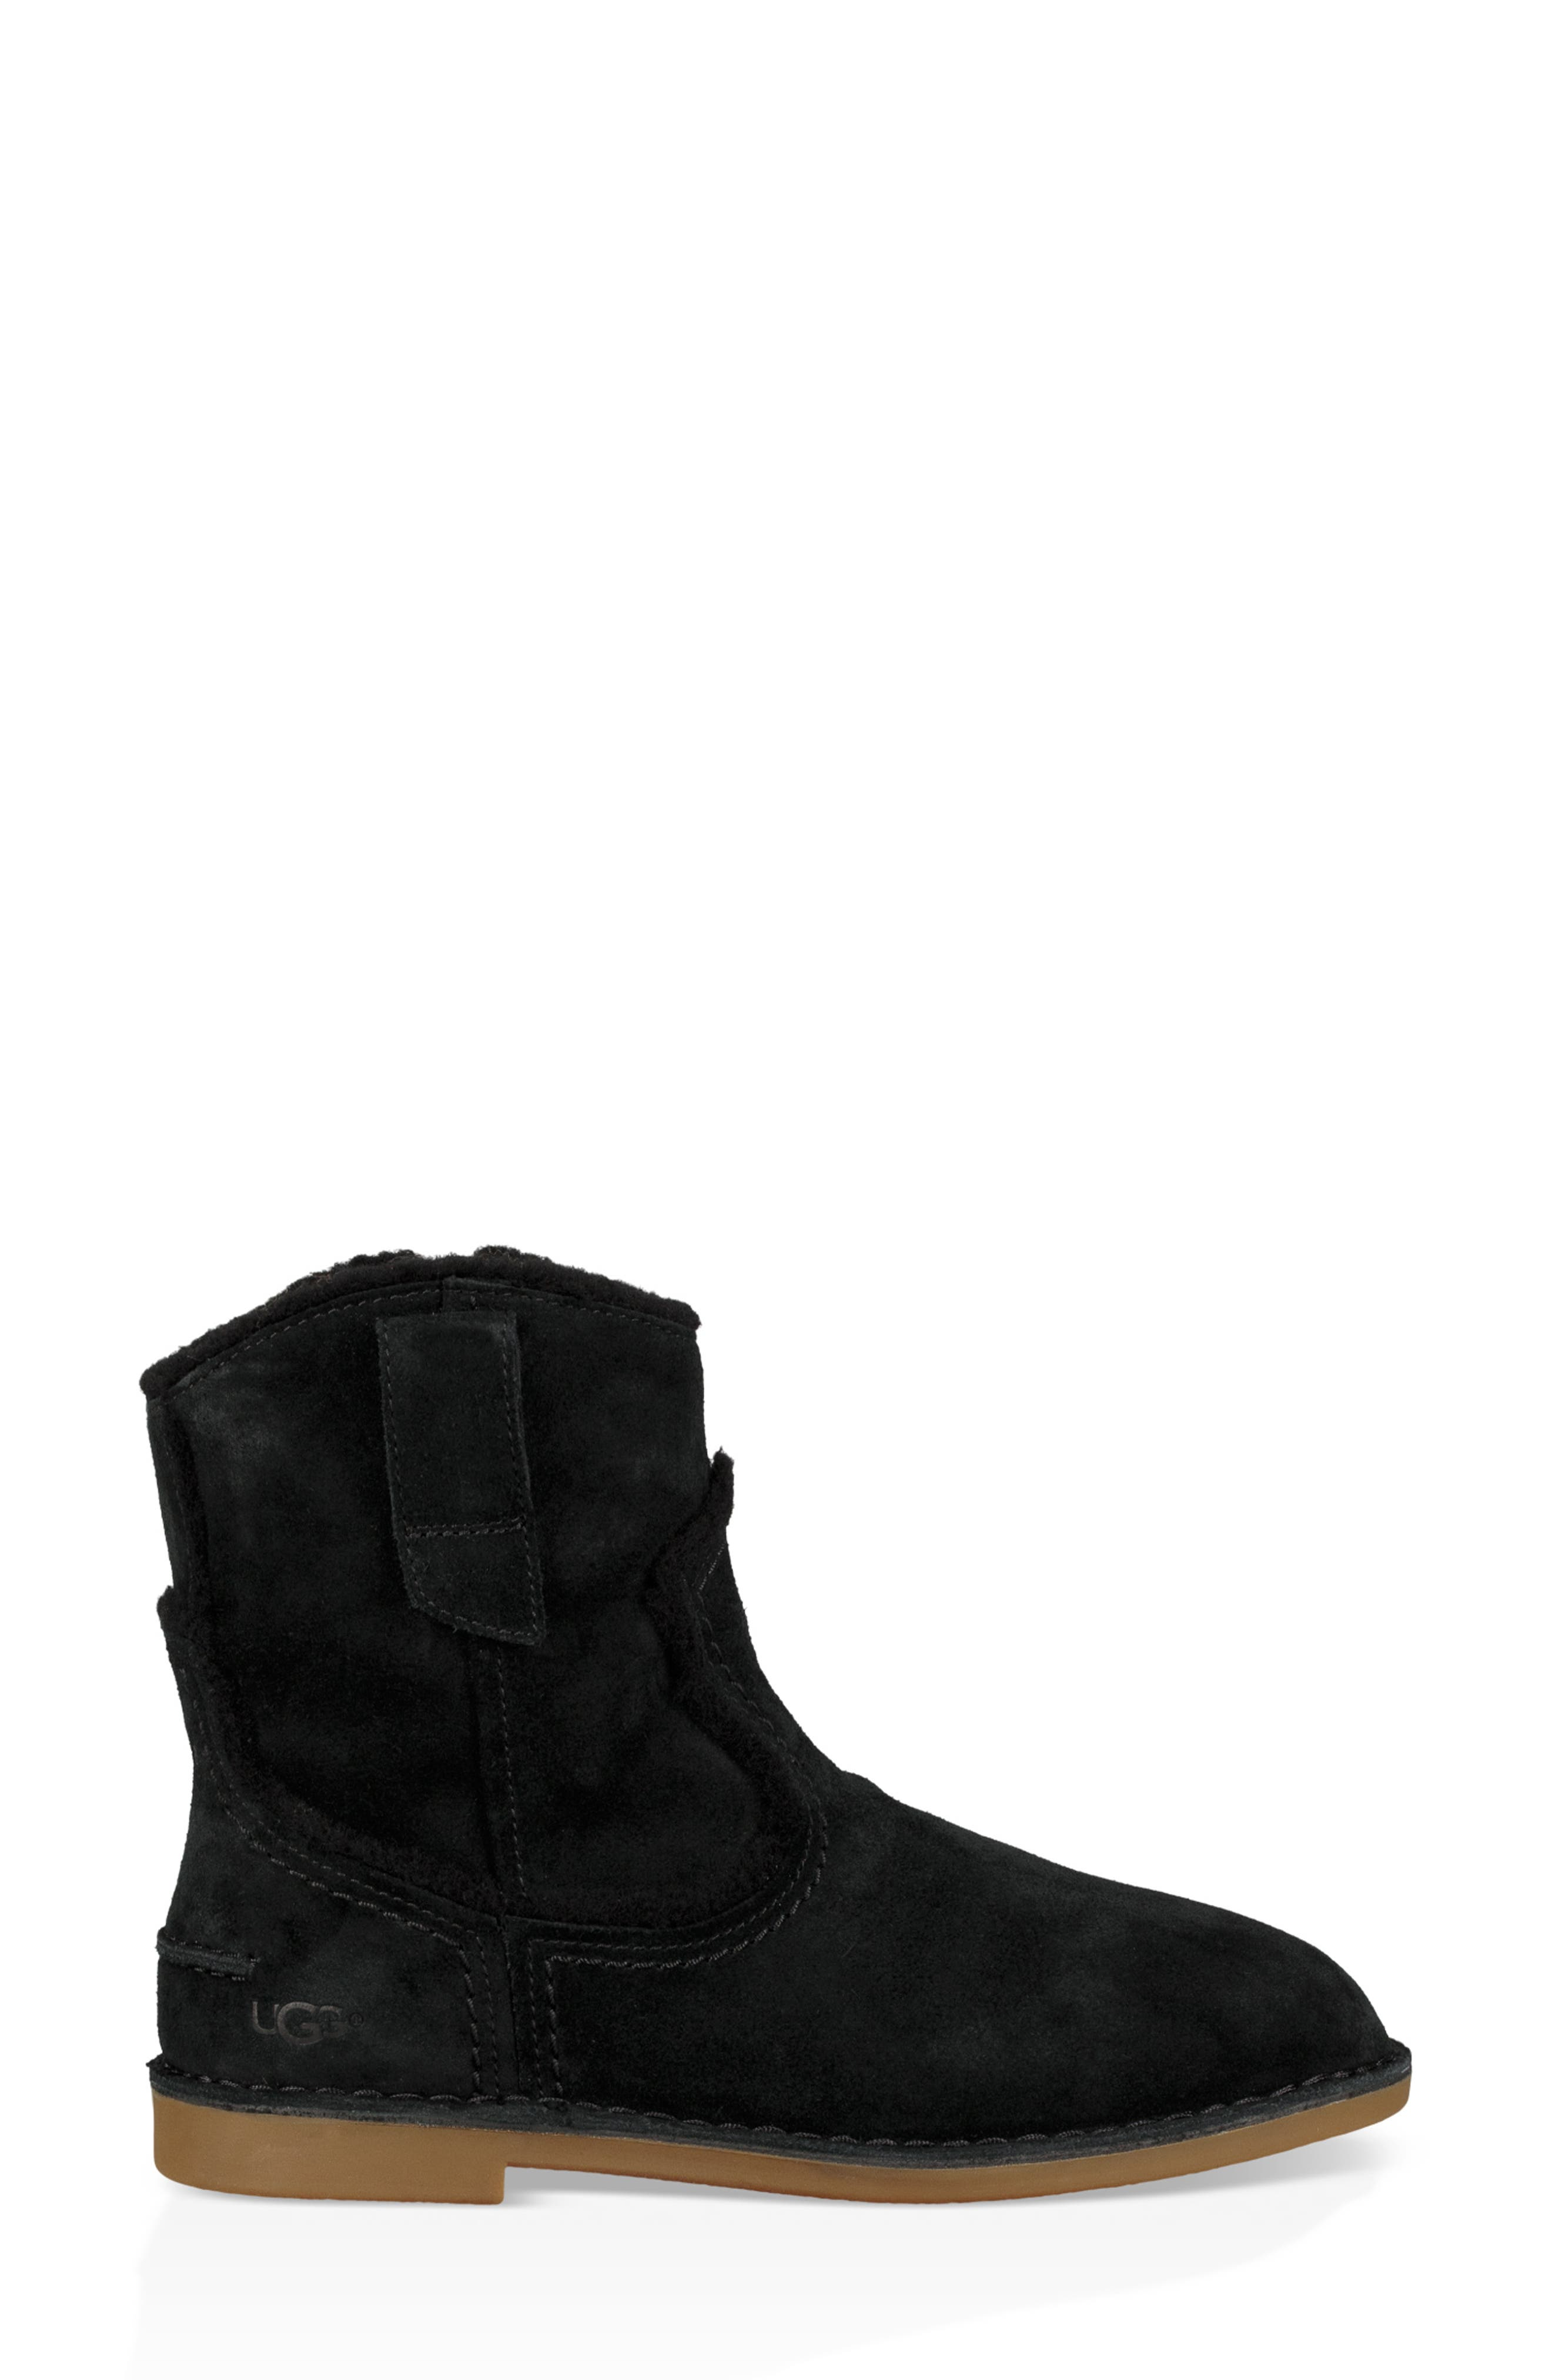 UGG<SUP>®</SUP>, Catica Boot, Alternate thumbnail 3, color, 001